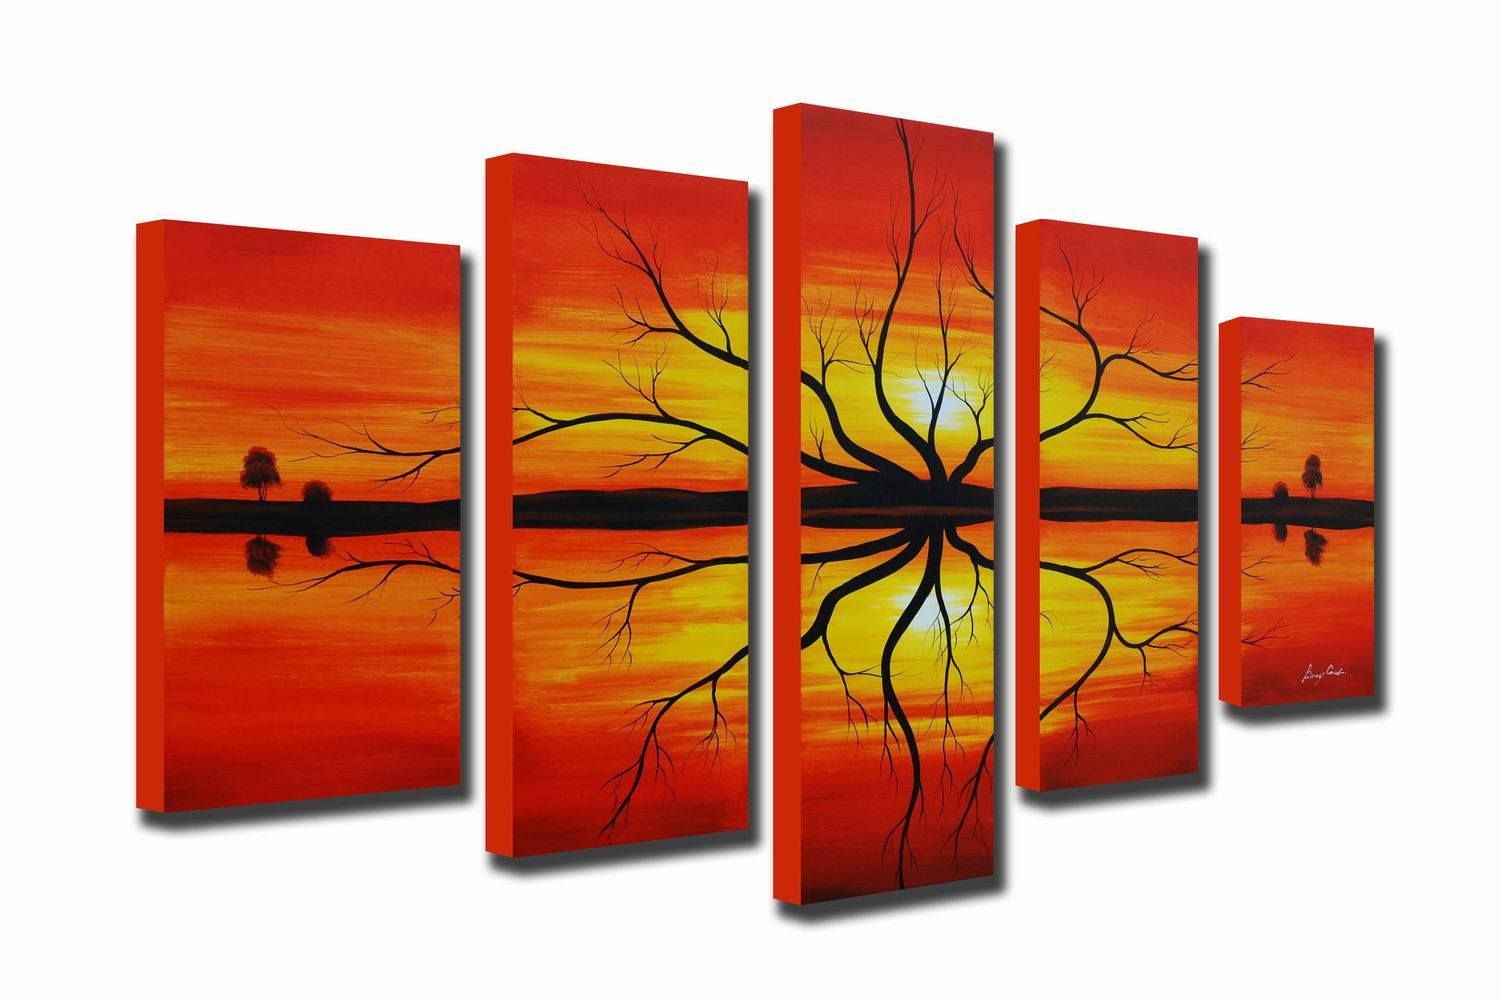 Wall decal on canvas high def pics